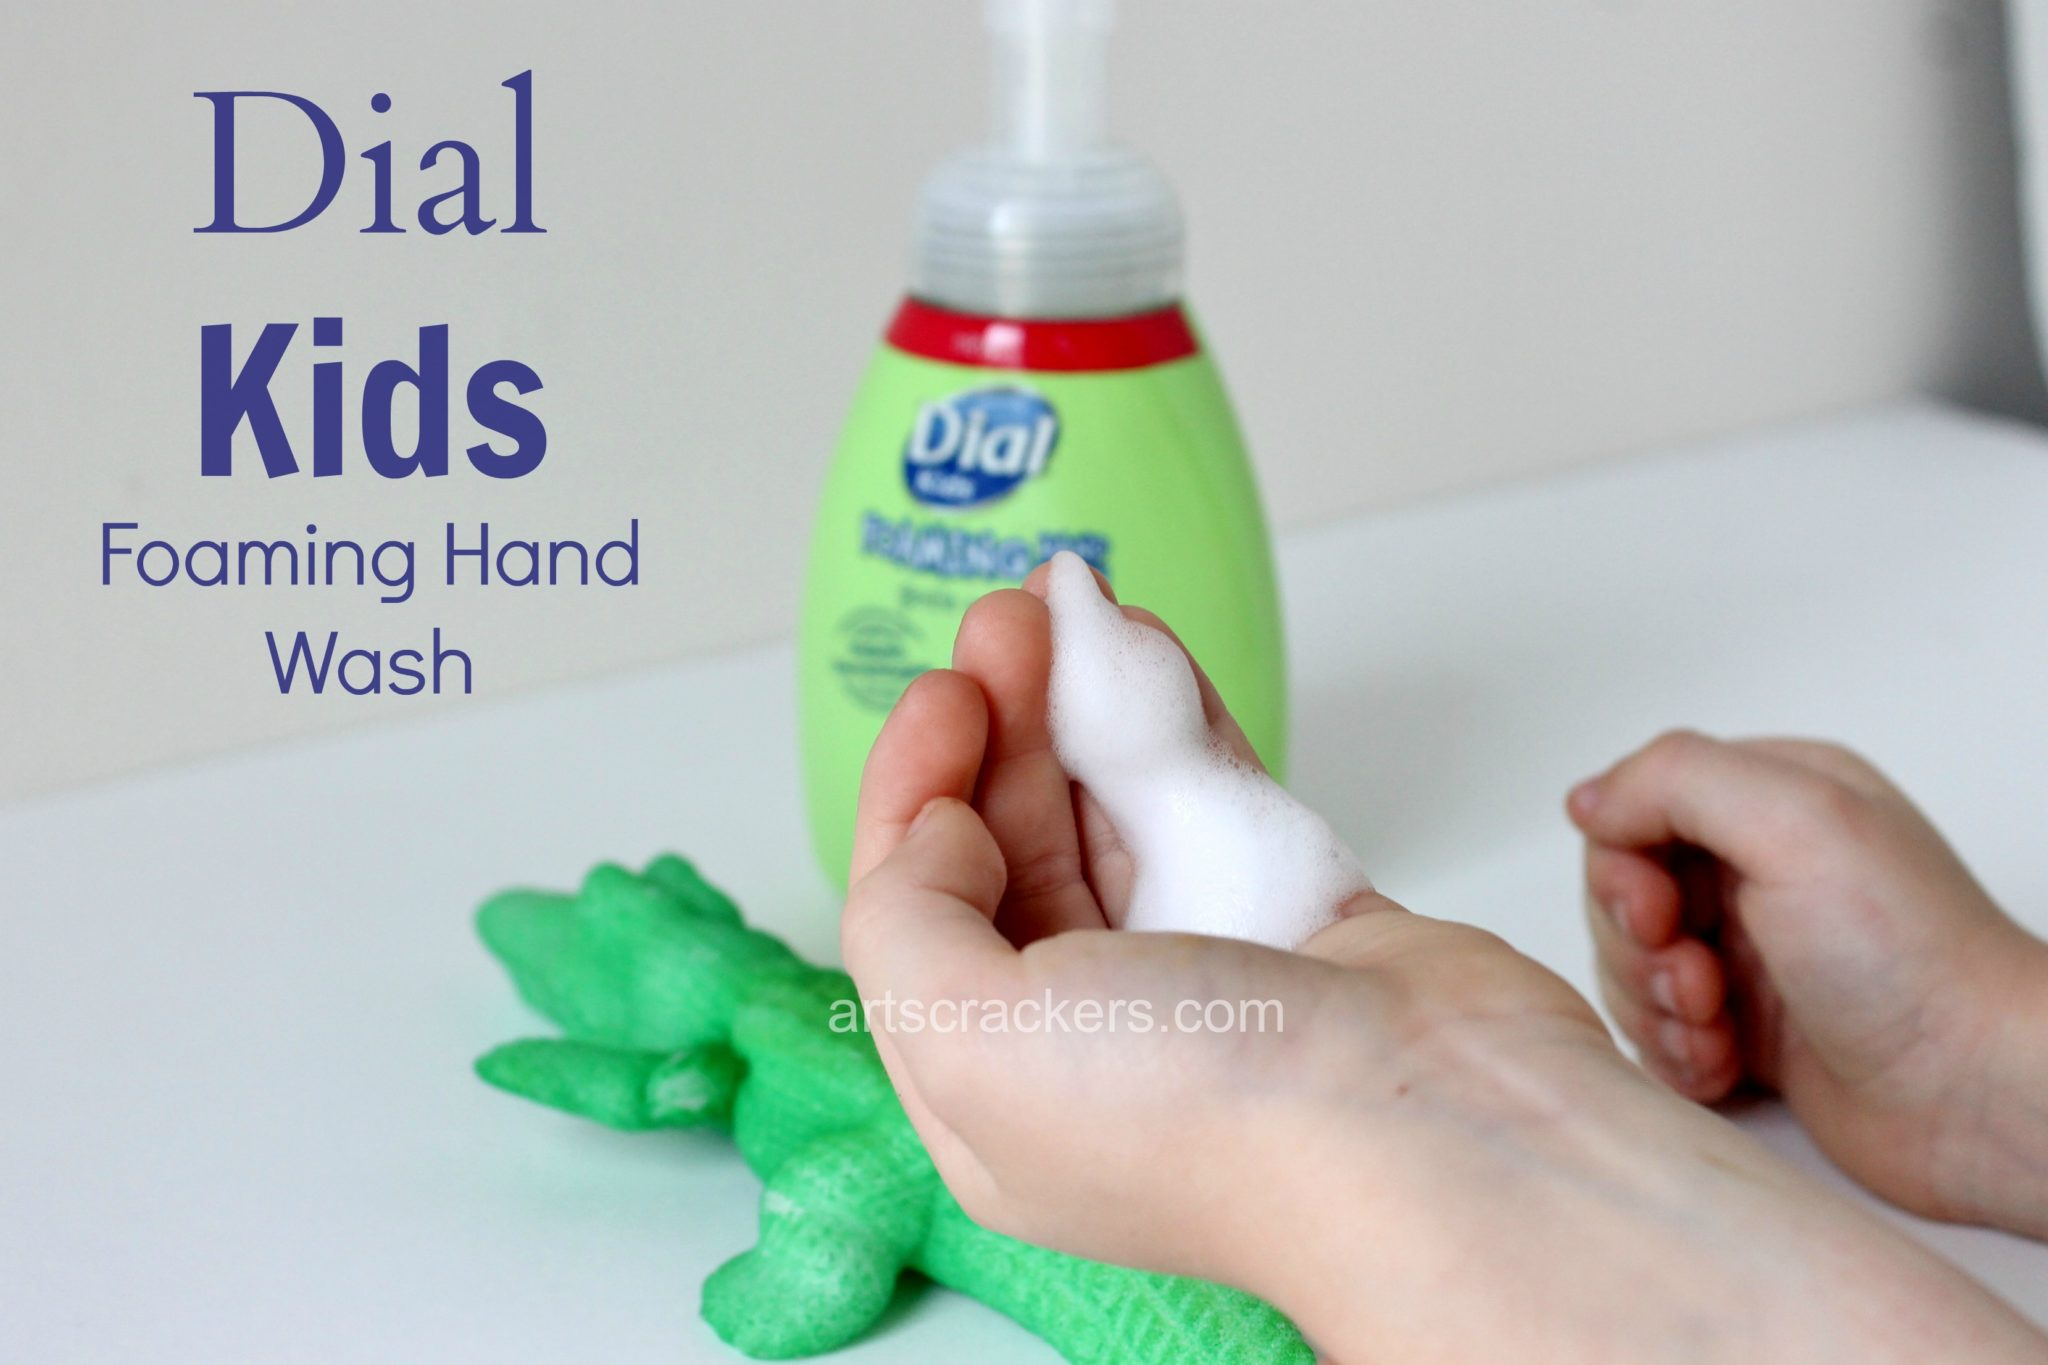 Dial Kids Foaming Hand Wash. Click the picture for the review and giveaway.